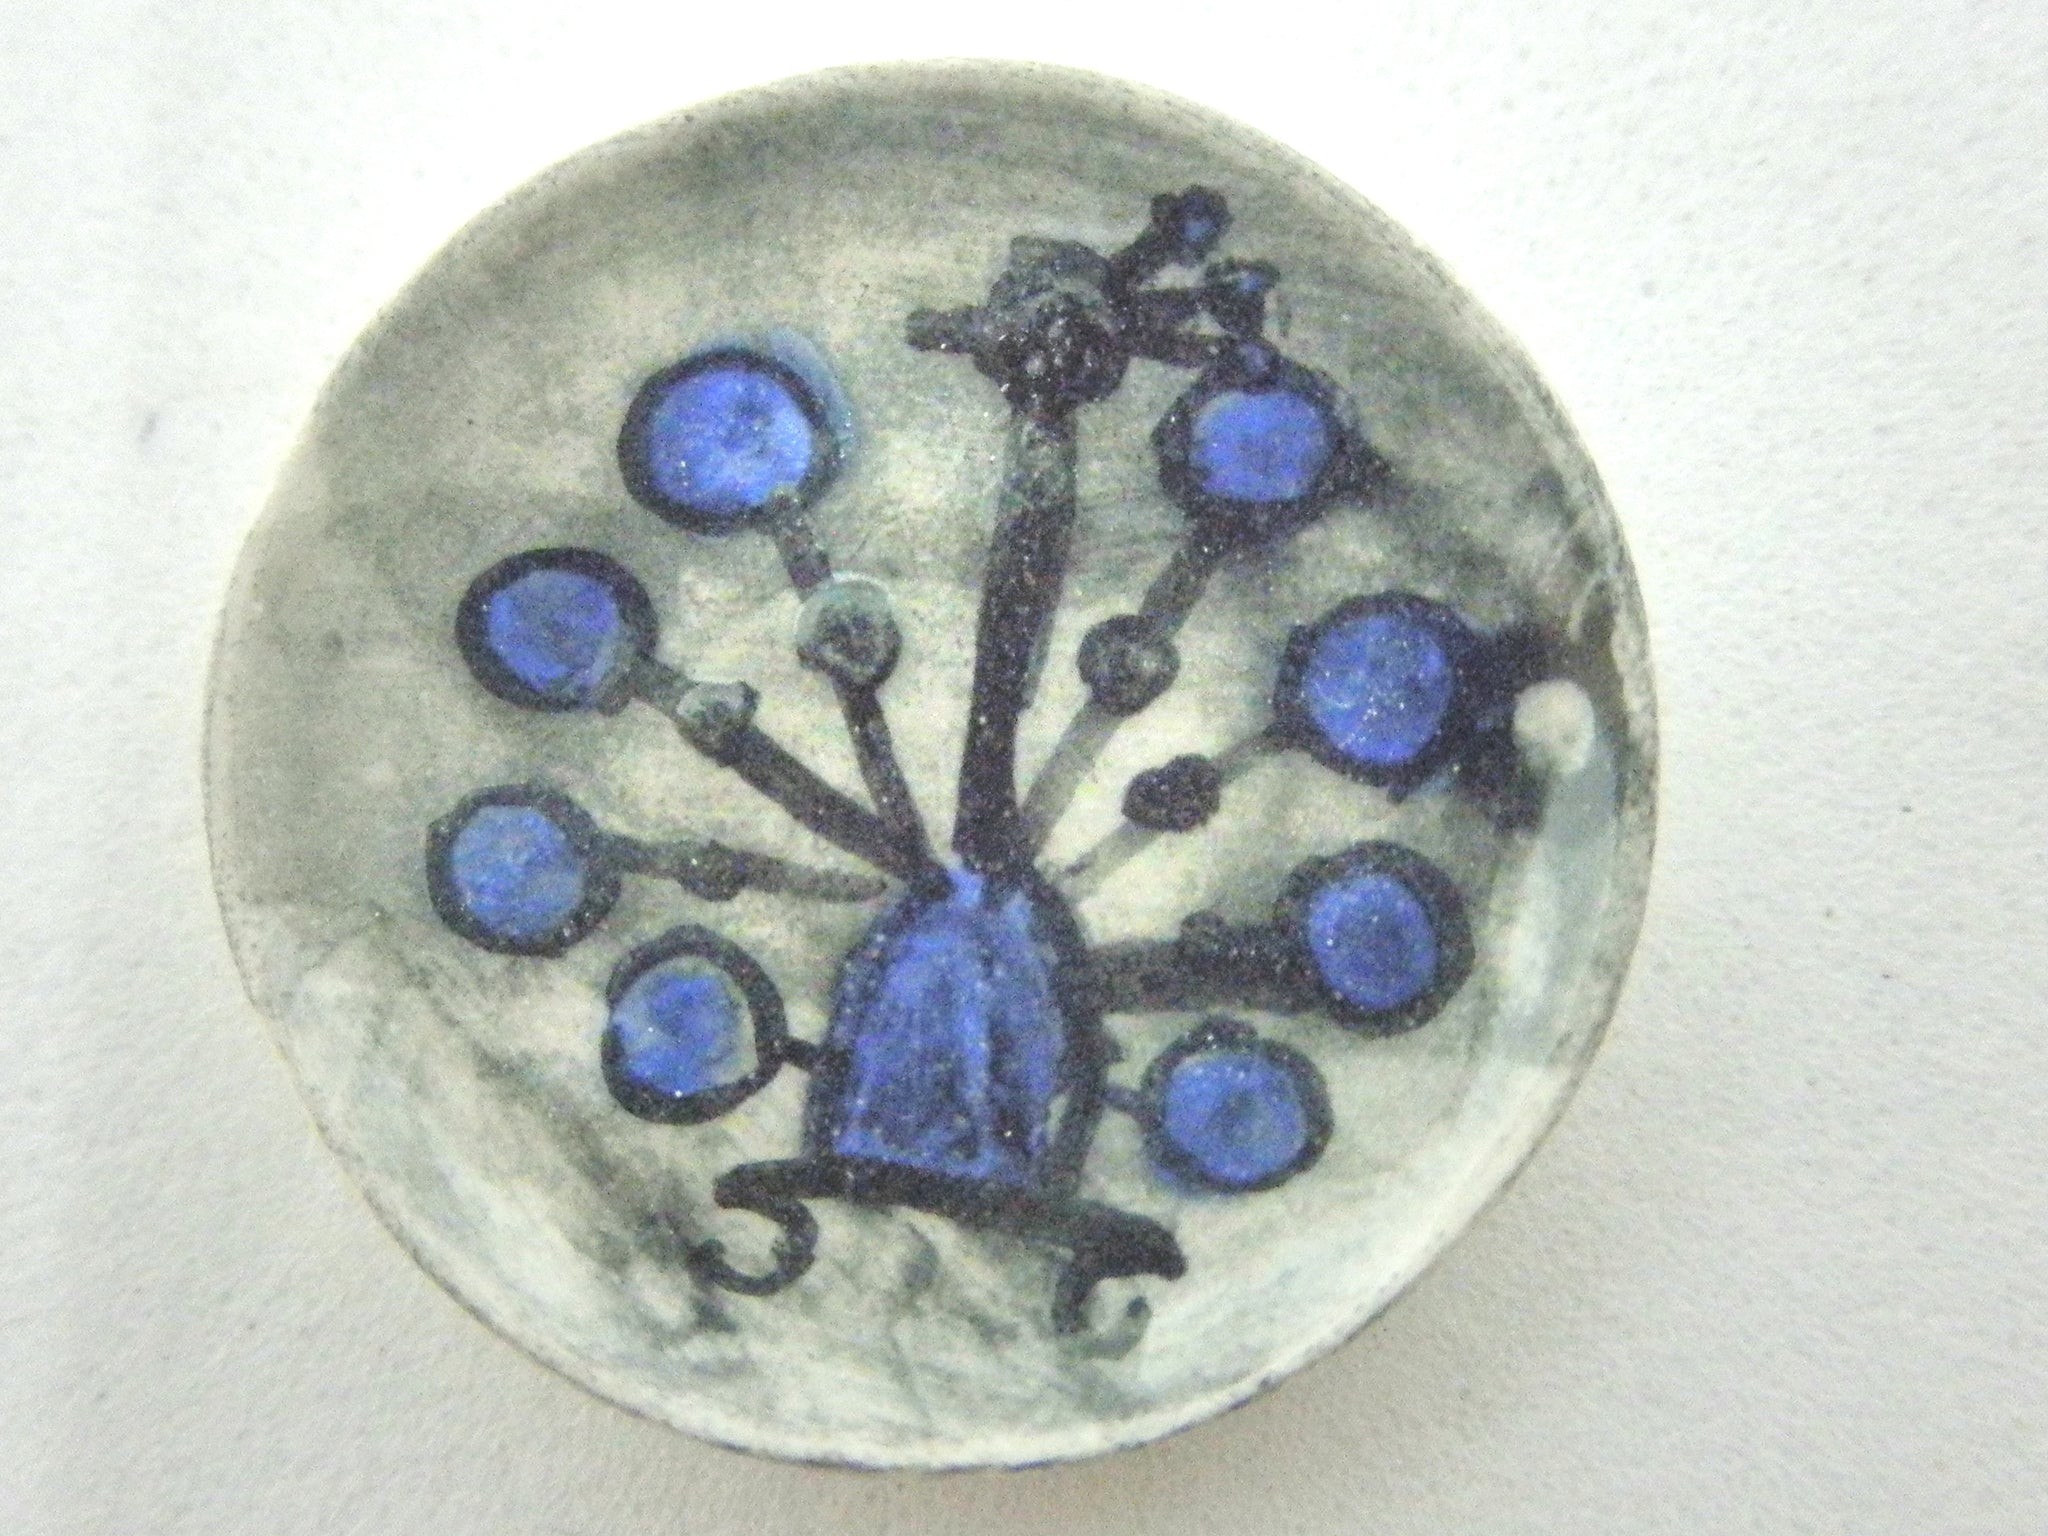 Miniature ceramic plate - stylized peacock